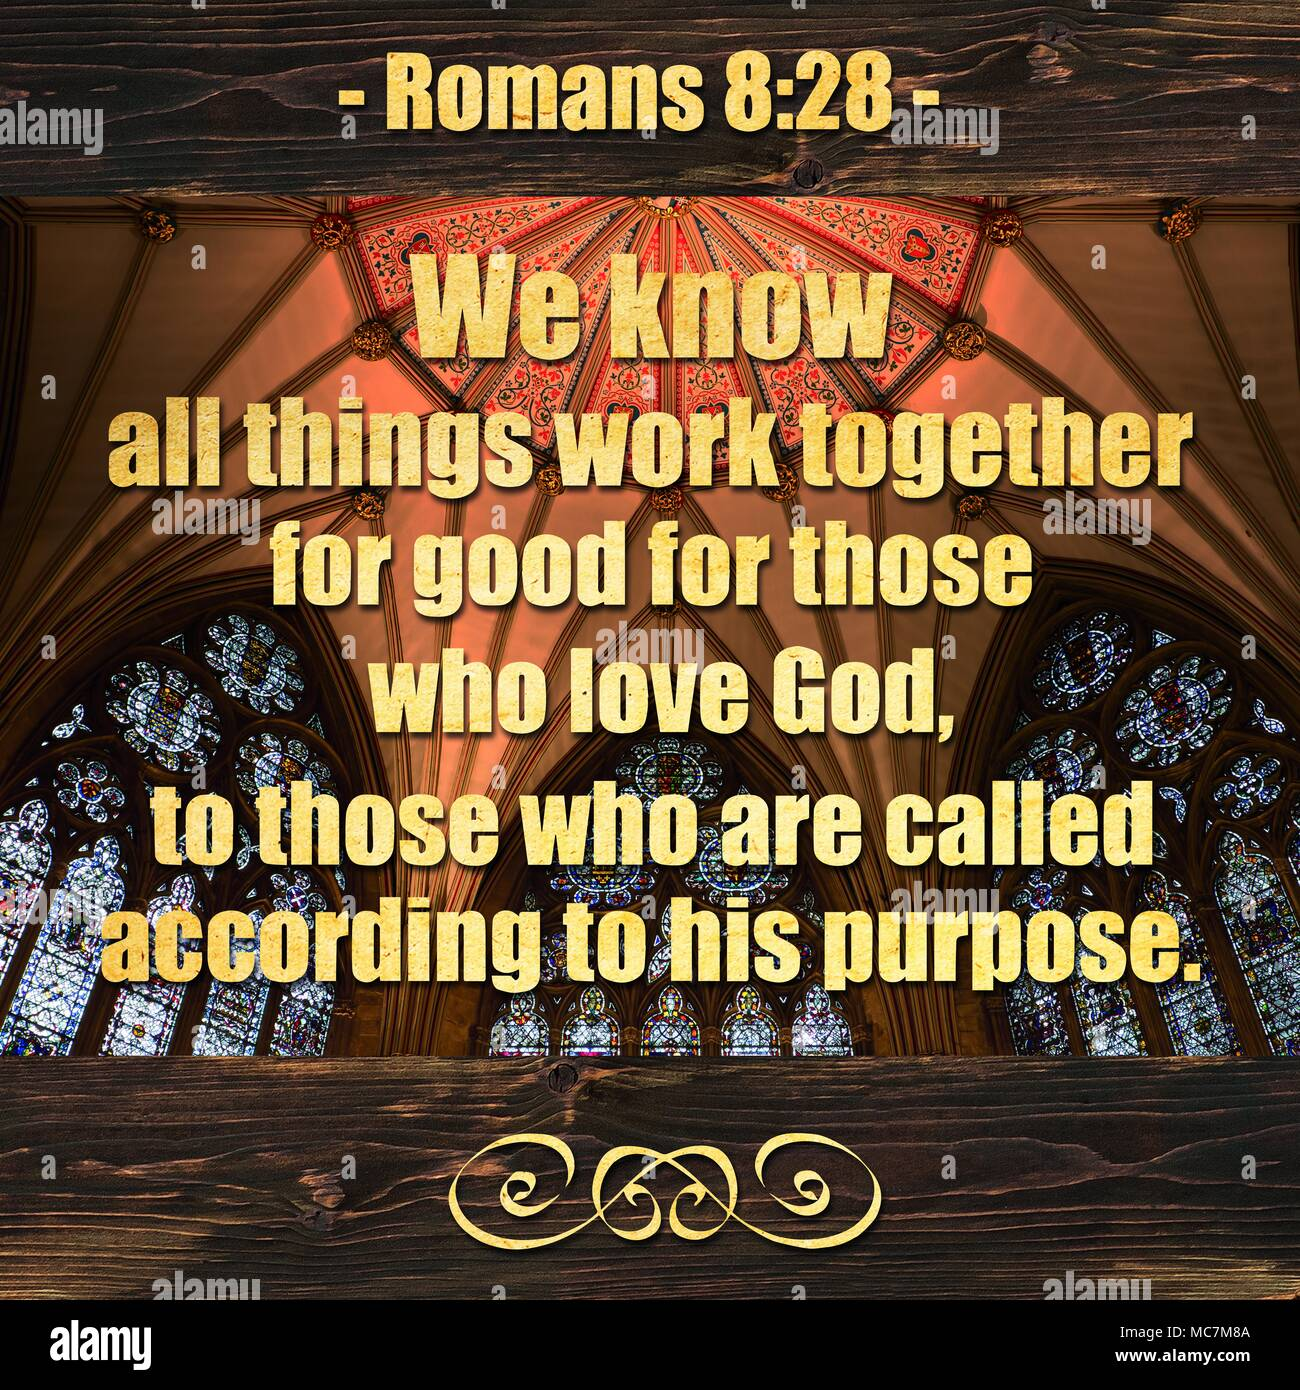 romans 8 28 we know all things work together for good for those who